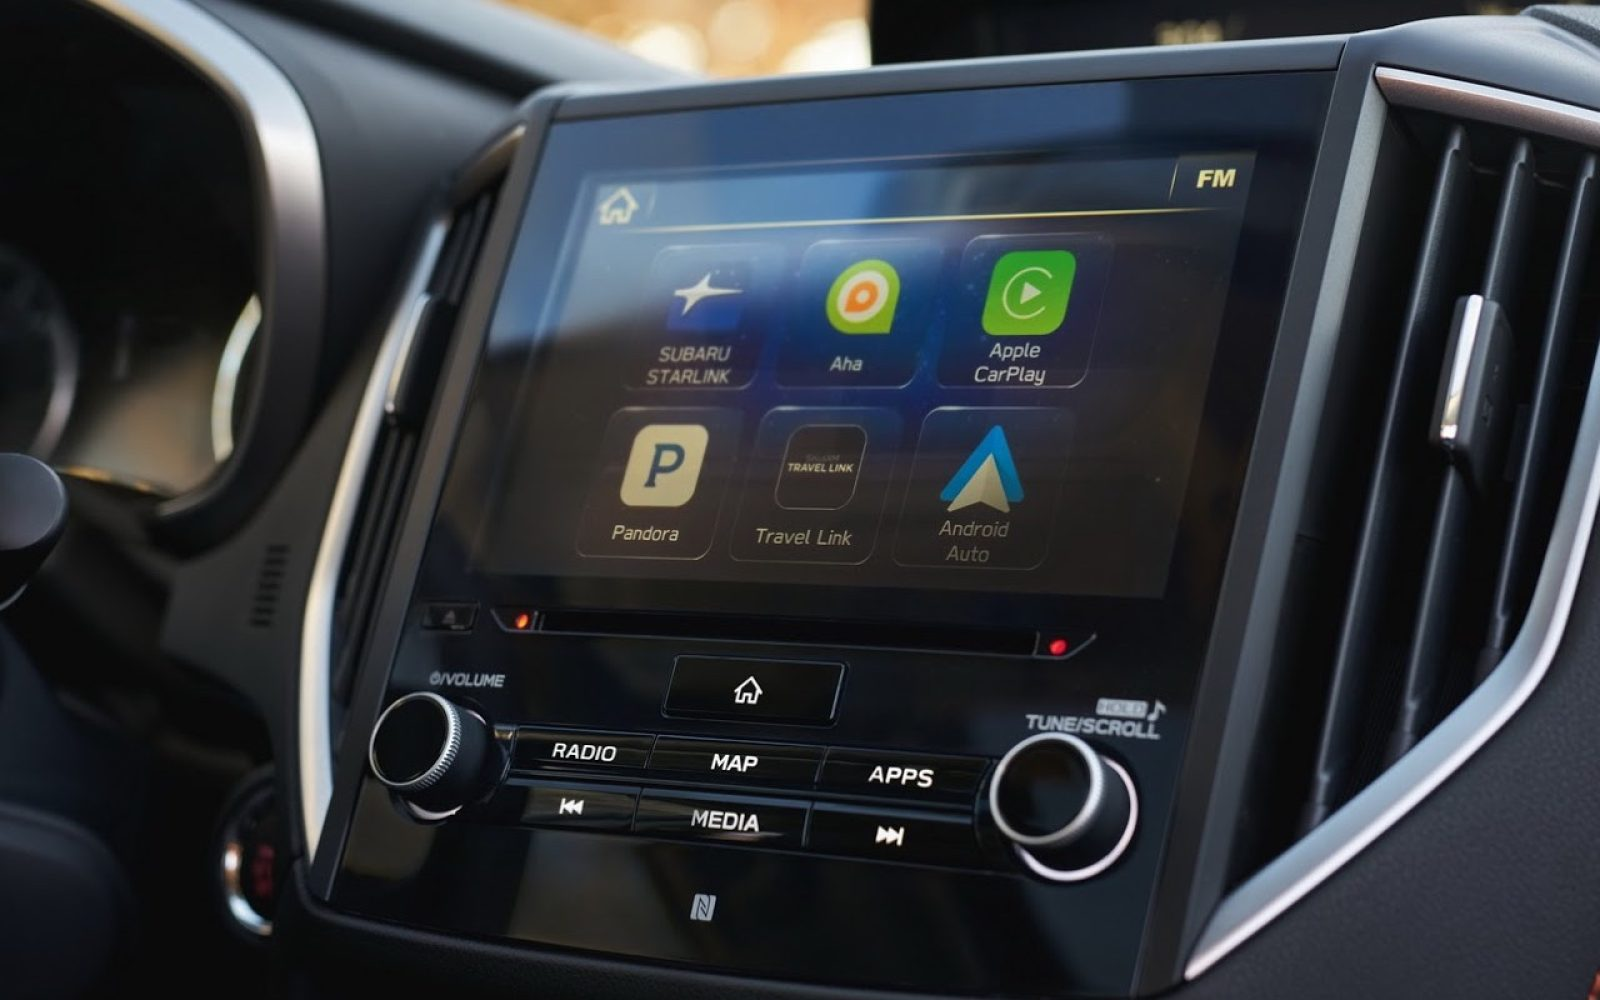 Android Auto - 9to5Mac